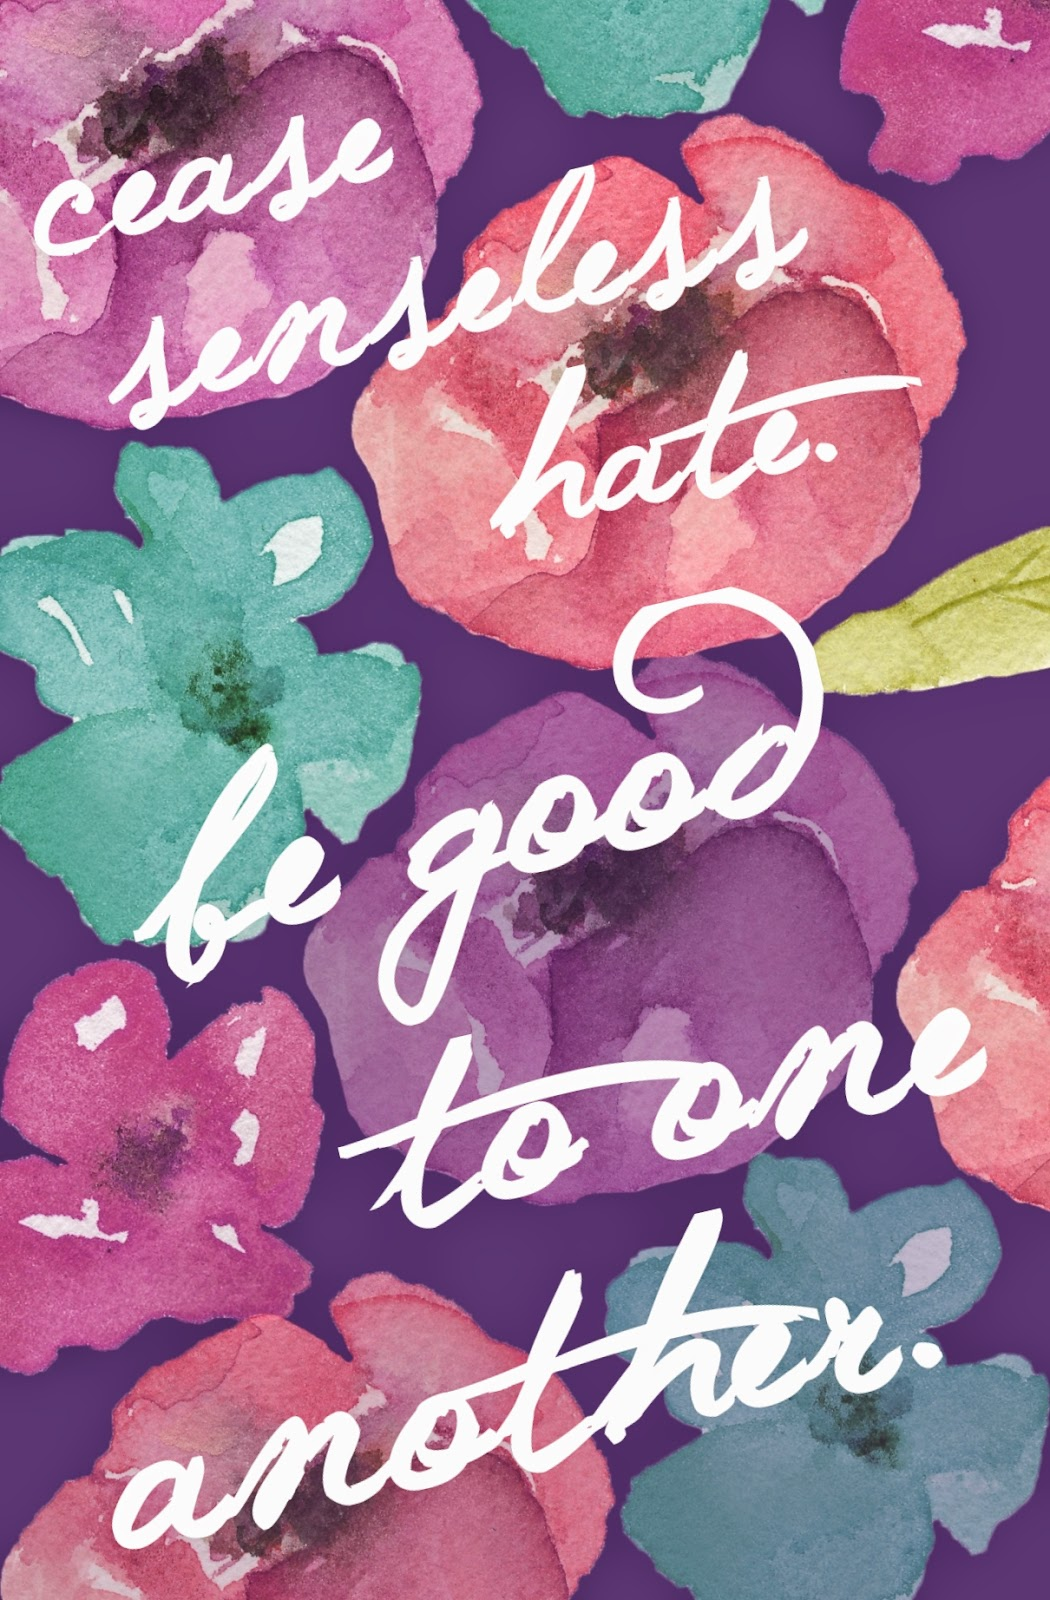 Cease senseless hate. Be good to one another. | Land of Honey